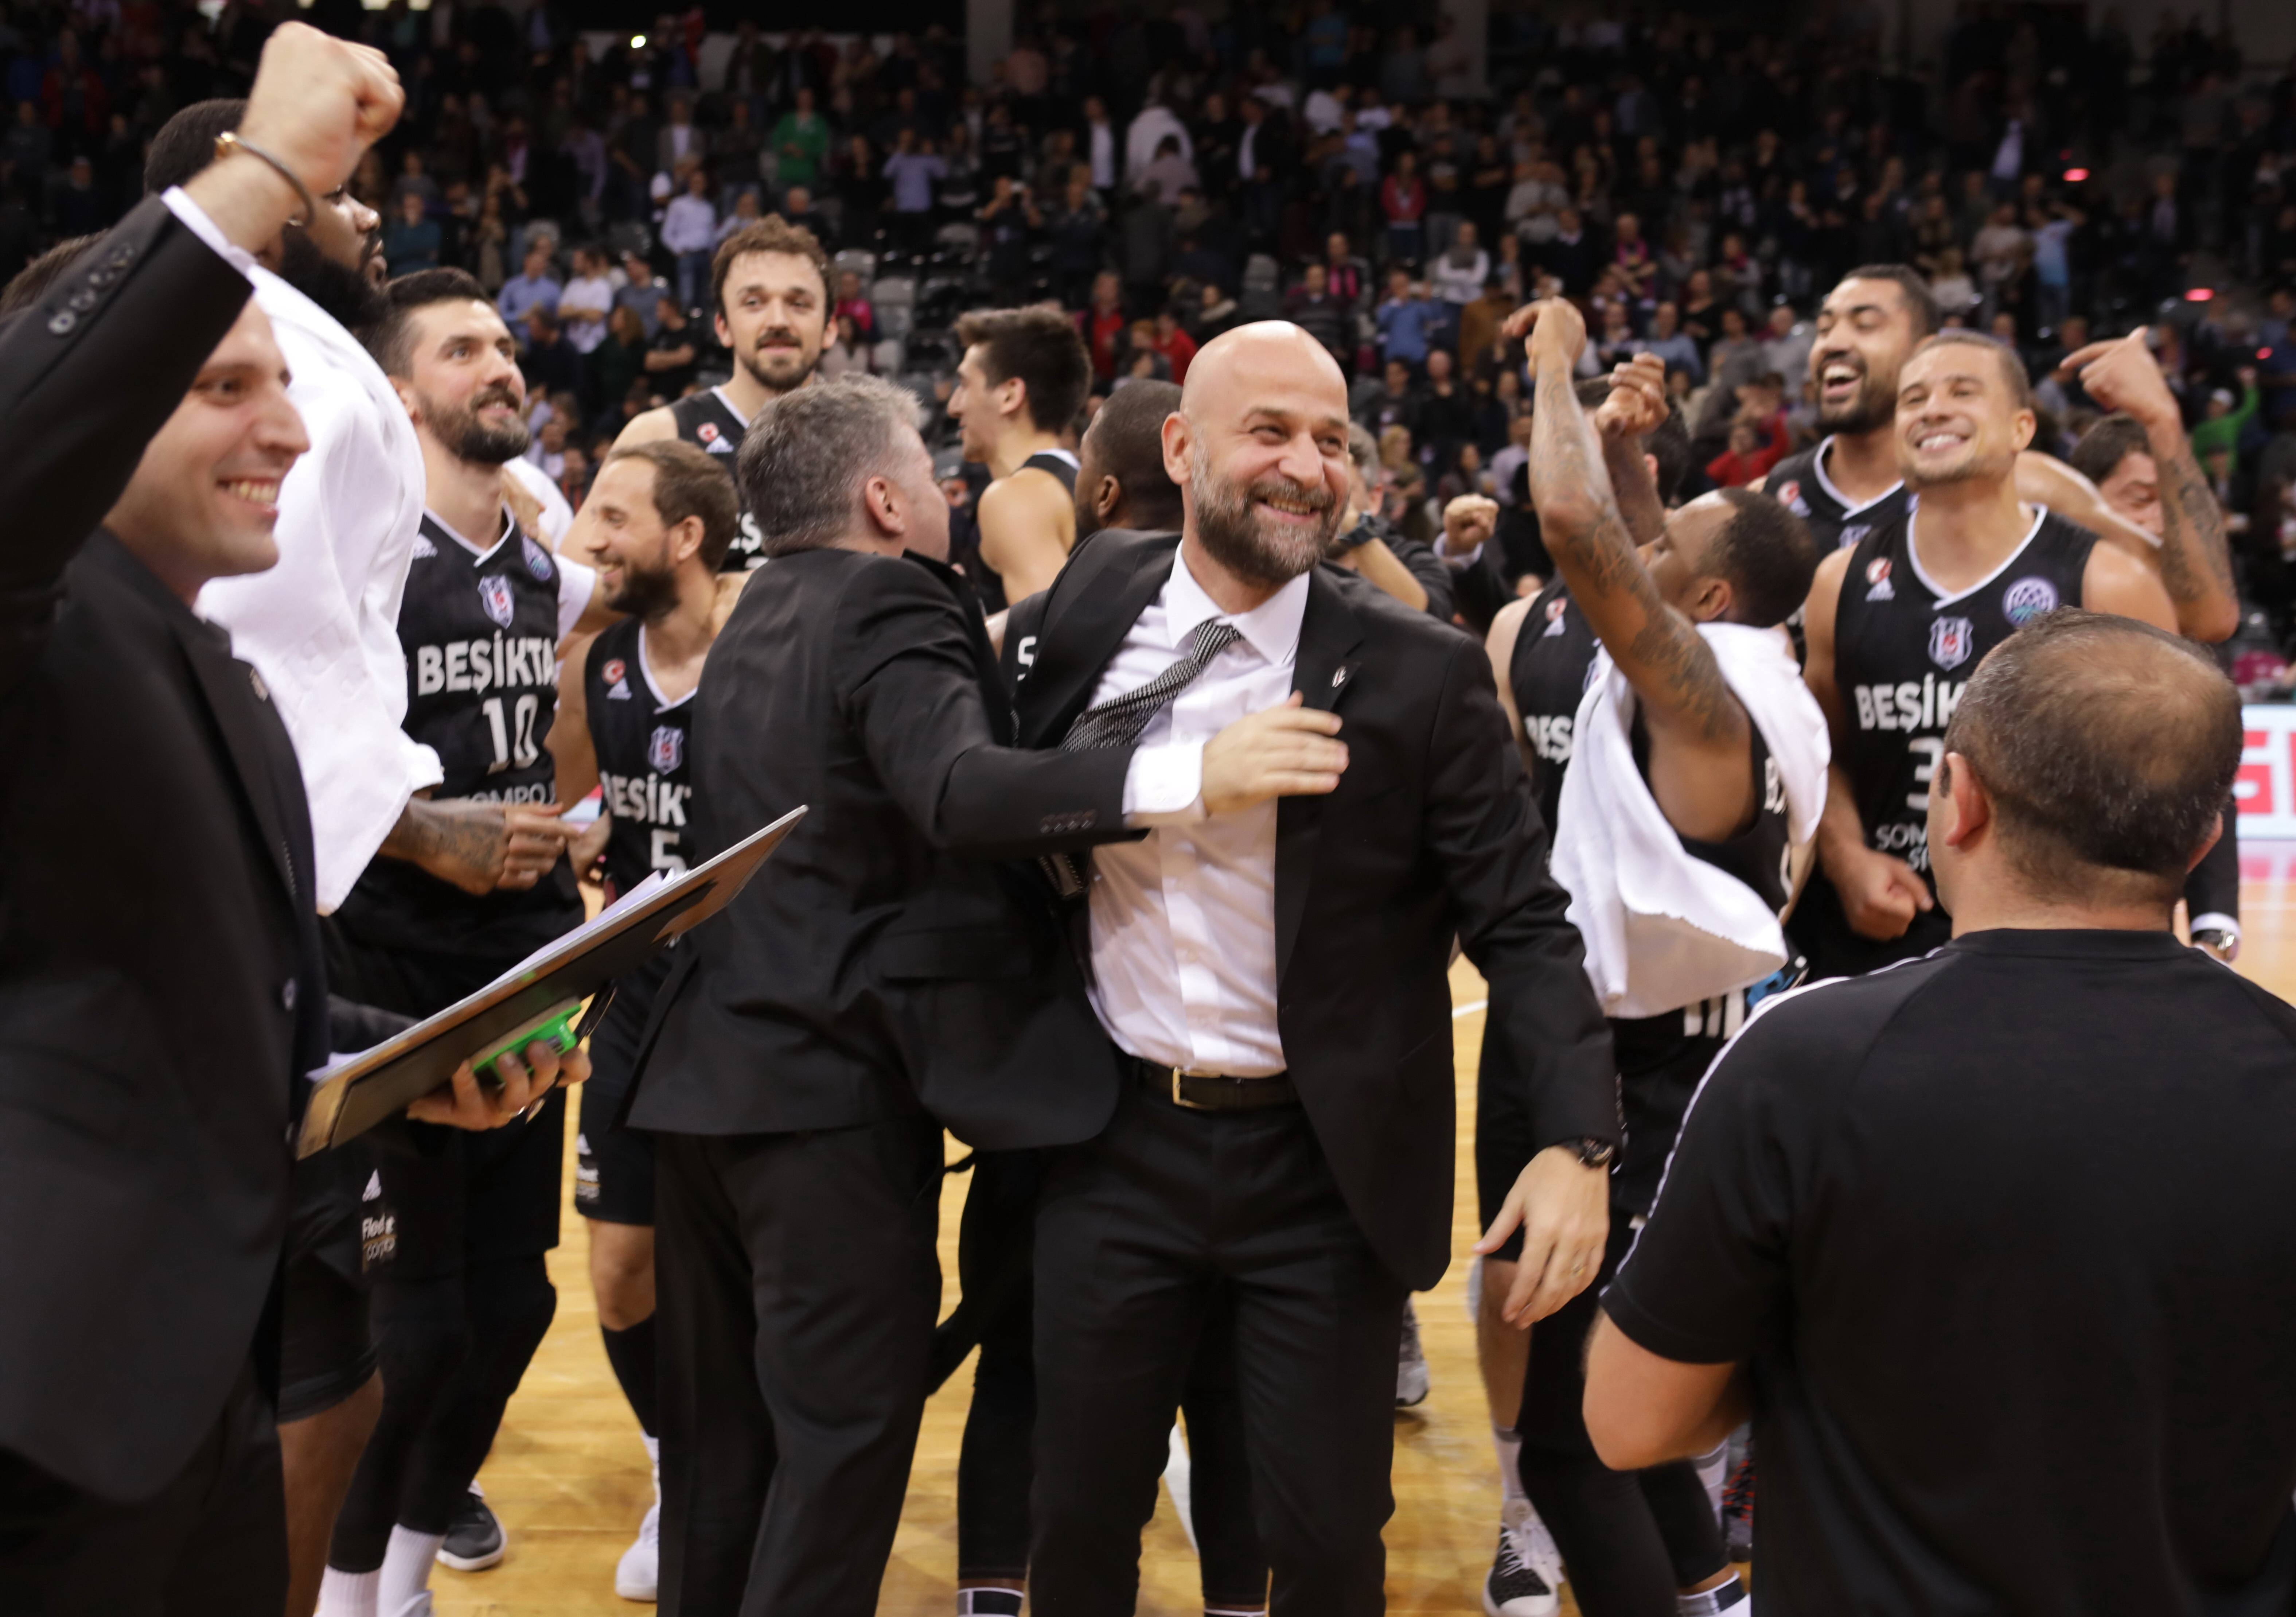 November 15, 2017 - November 15, 2017 - Kyle Weems / Besiktas Istanbul nach Sieg über Telekom Baskets Bonn , Basketball Champions League Foto: Jörn Wolter *** Kyle Weems Besiktas Istanbul to victory over Telekom Baskets Bonn basketball Champions League photo Jörn Wolter MR:N (Credit Image: © Imago via ZUMA Press)